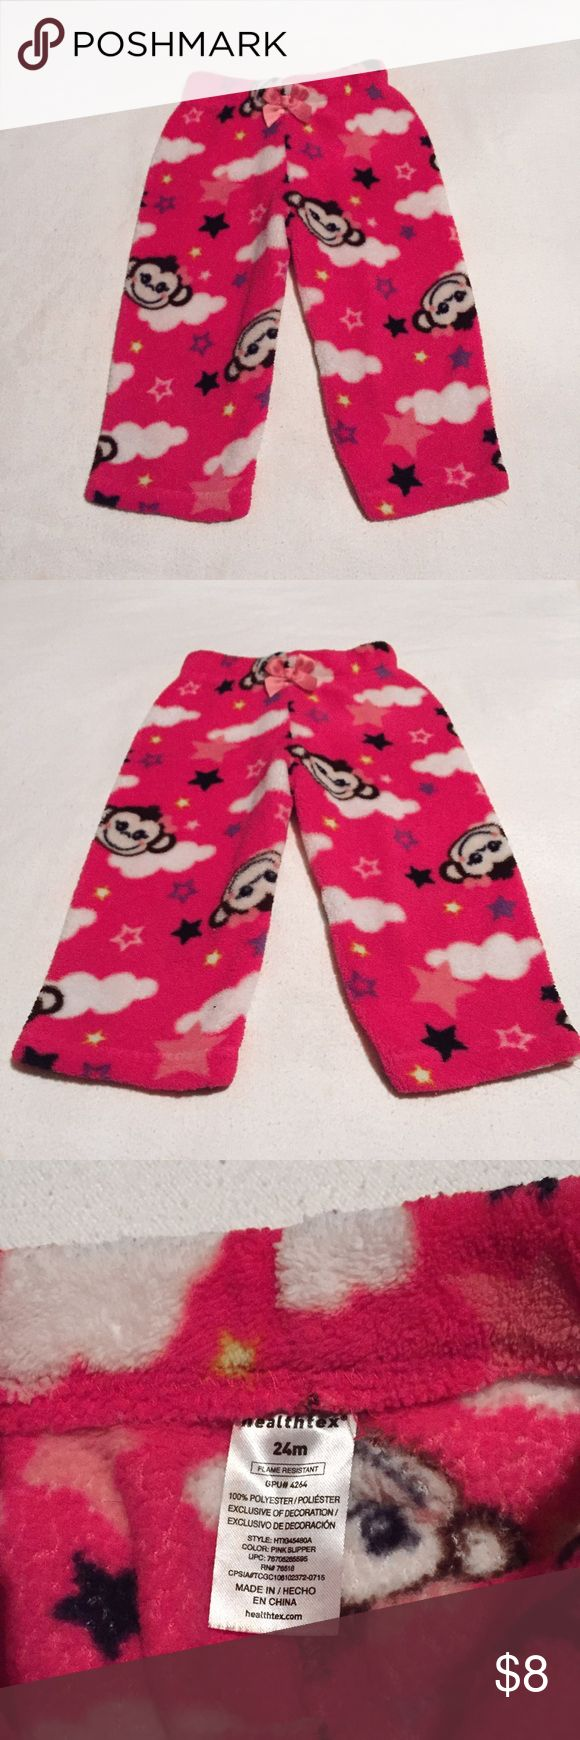 Baby Girl Pajama Bottoms These adorable baby girl pajama bottoms are brand new without tags. They are a size 24 months and their brand is Healthtex. They are made of 100% polyester and are incredibly soft! Healthtex Pajamas Pajama Bottoms